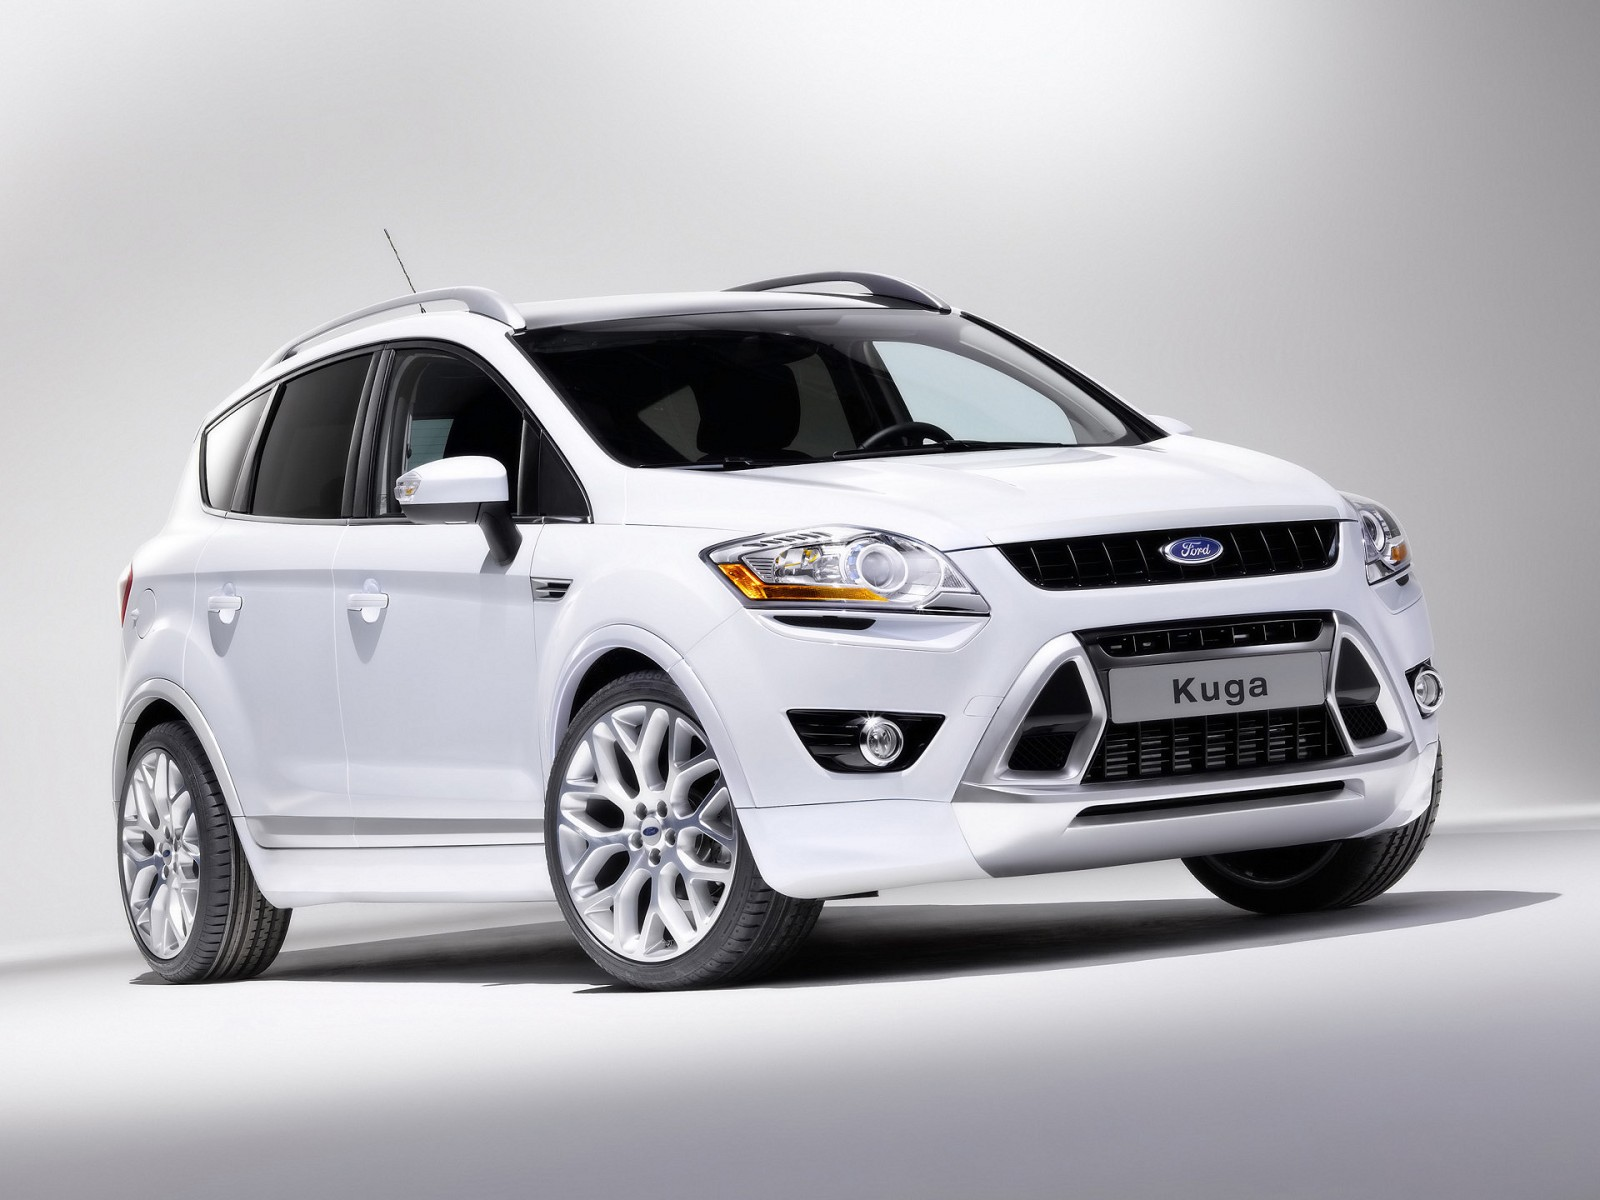 ford kuga 2009 wallpaper #14